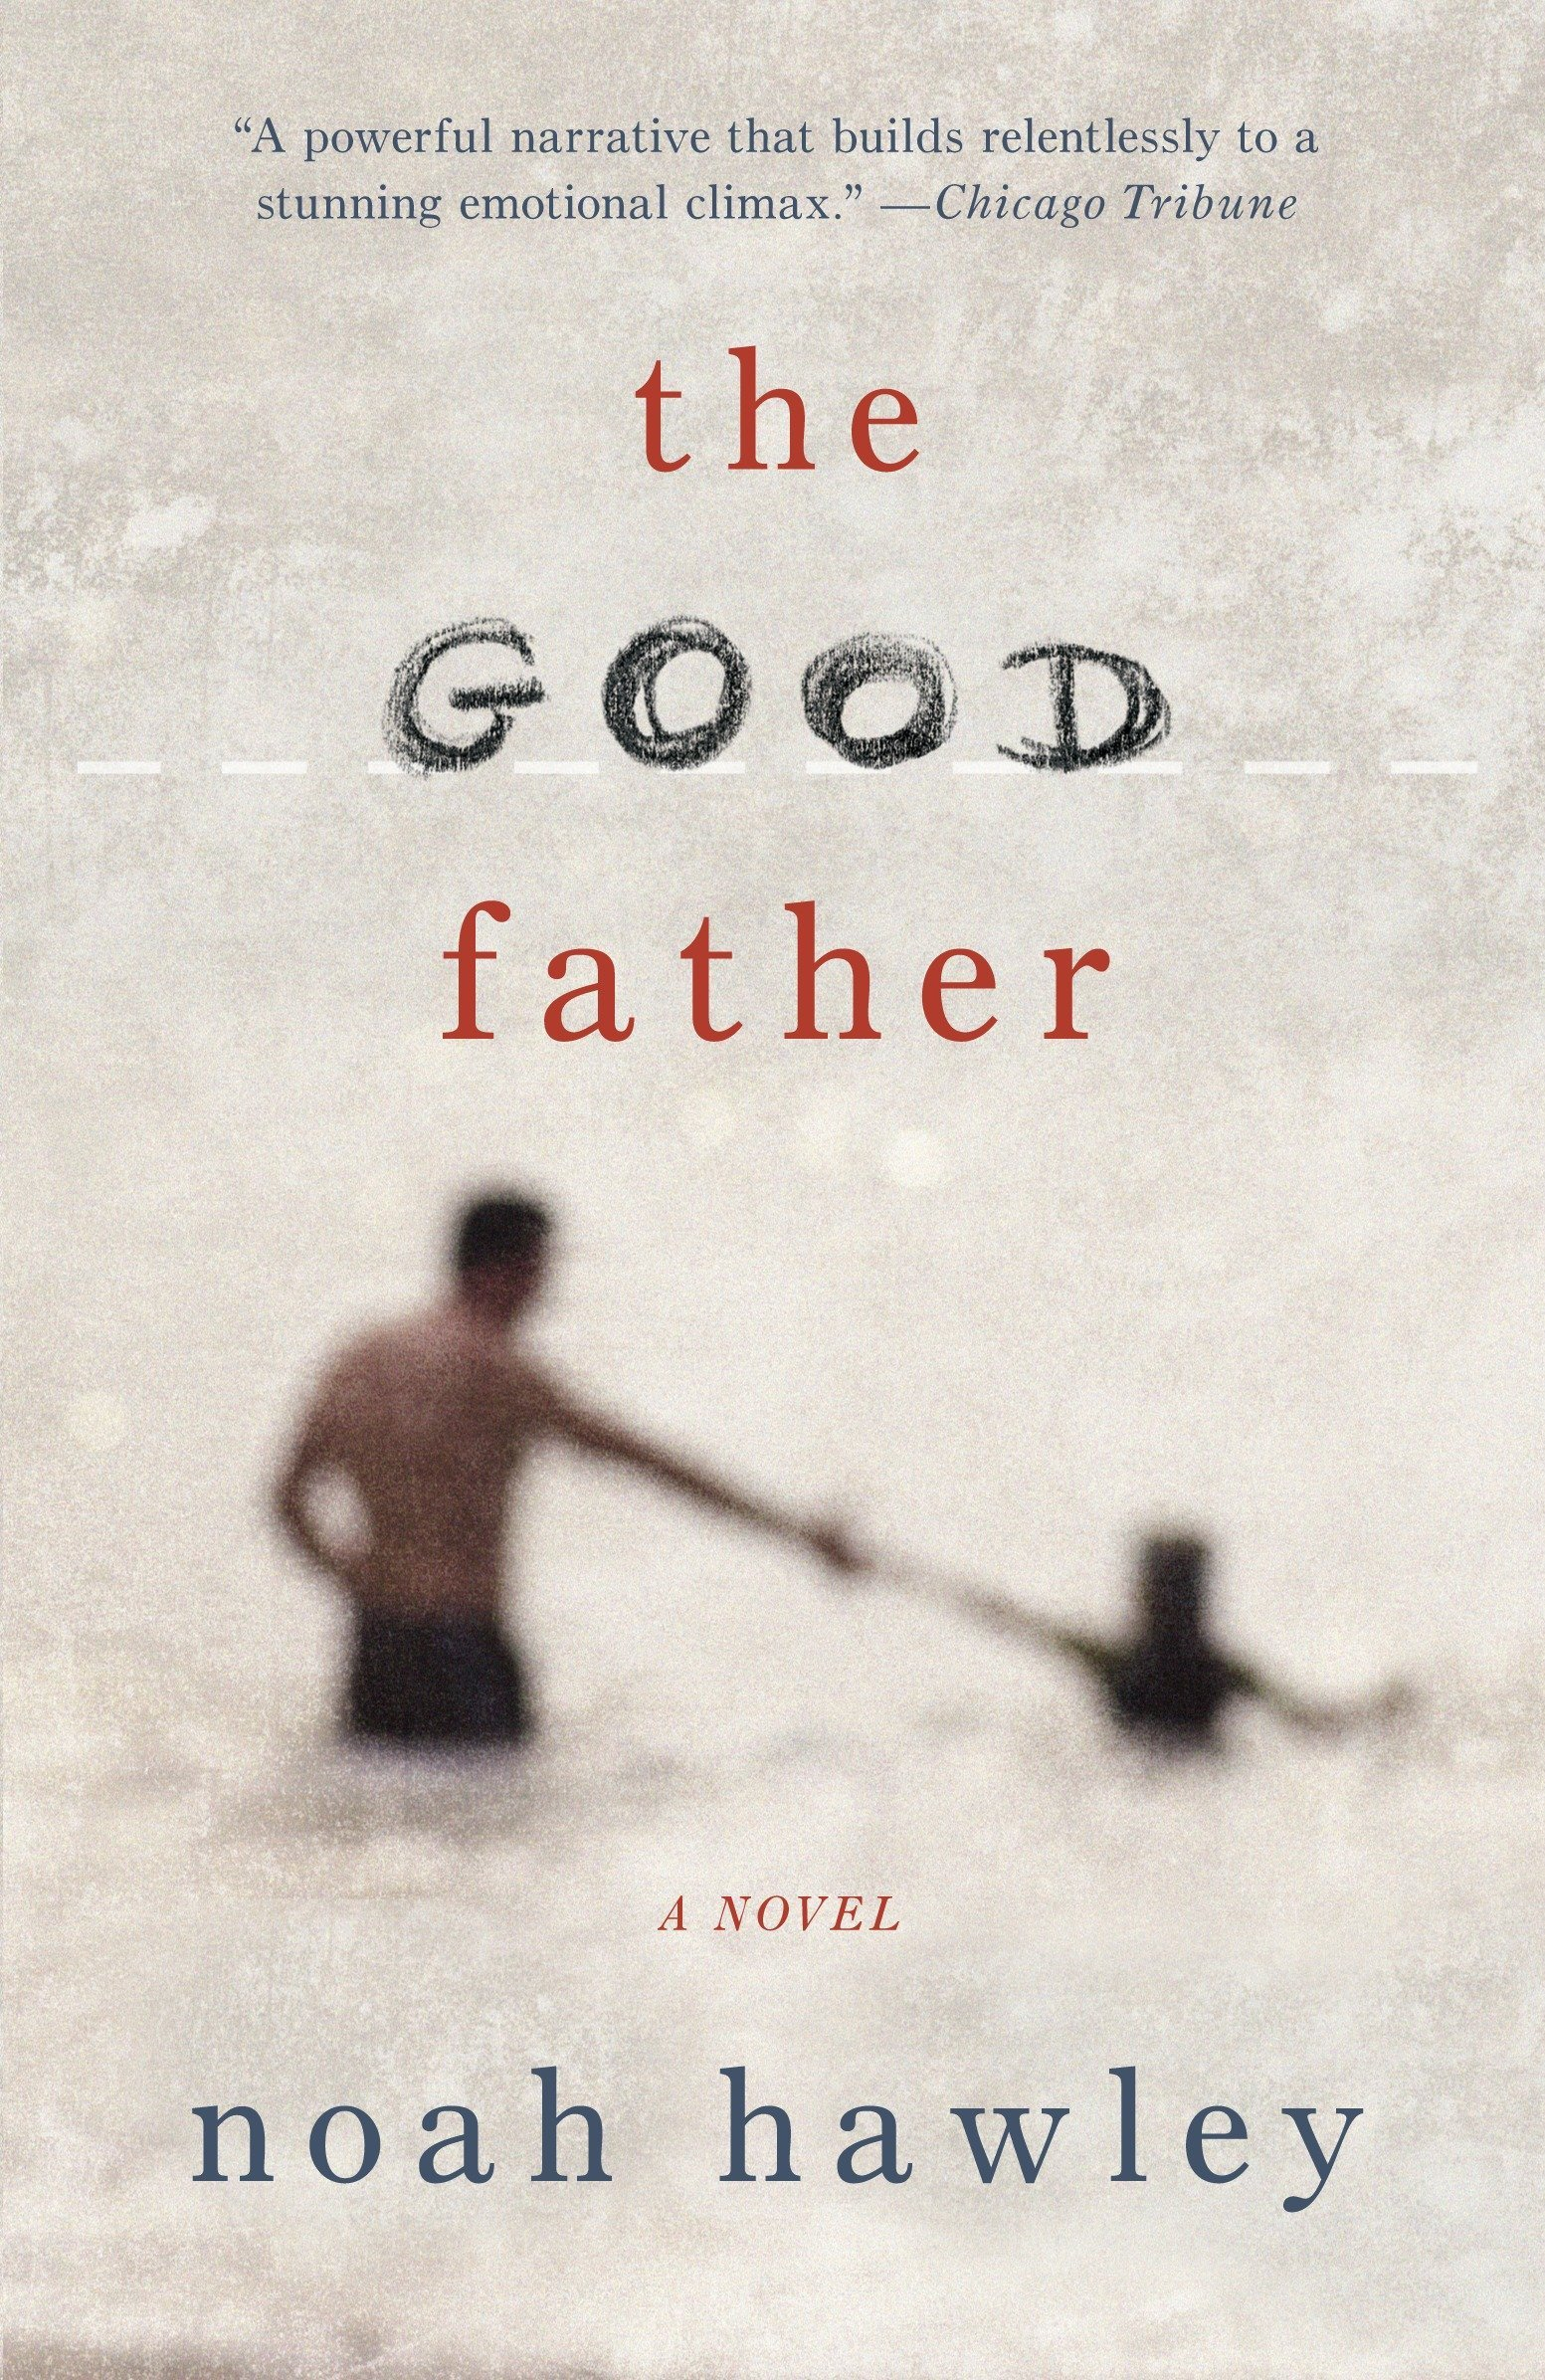 Amazon.com: The Good Father (9780307947918): Hawley, Noah: Books